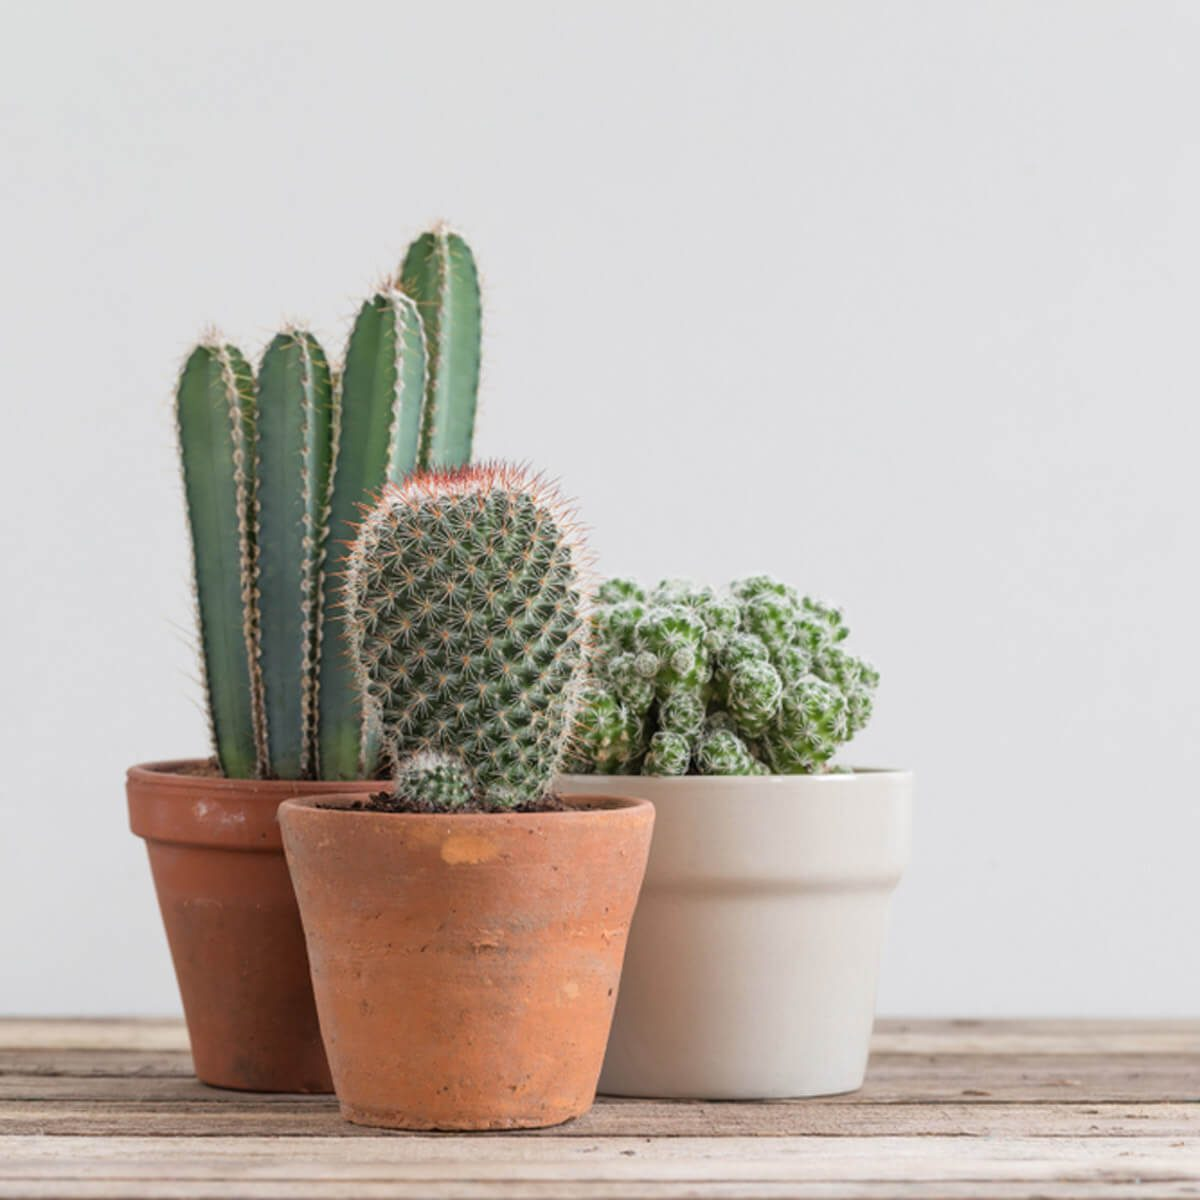 Ways To Decorate With Plants: 14 Ways To Decorate Your Home With Cactus